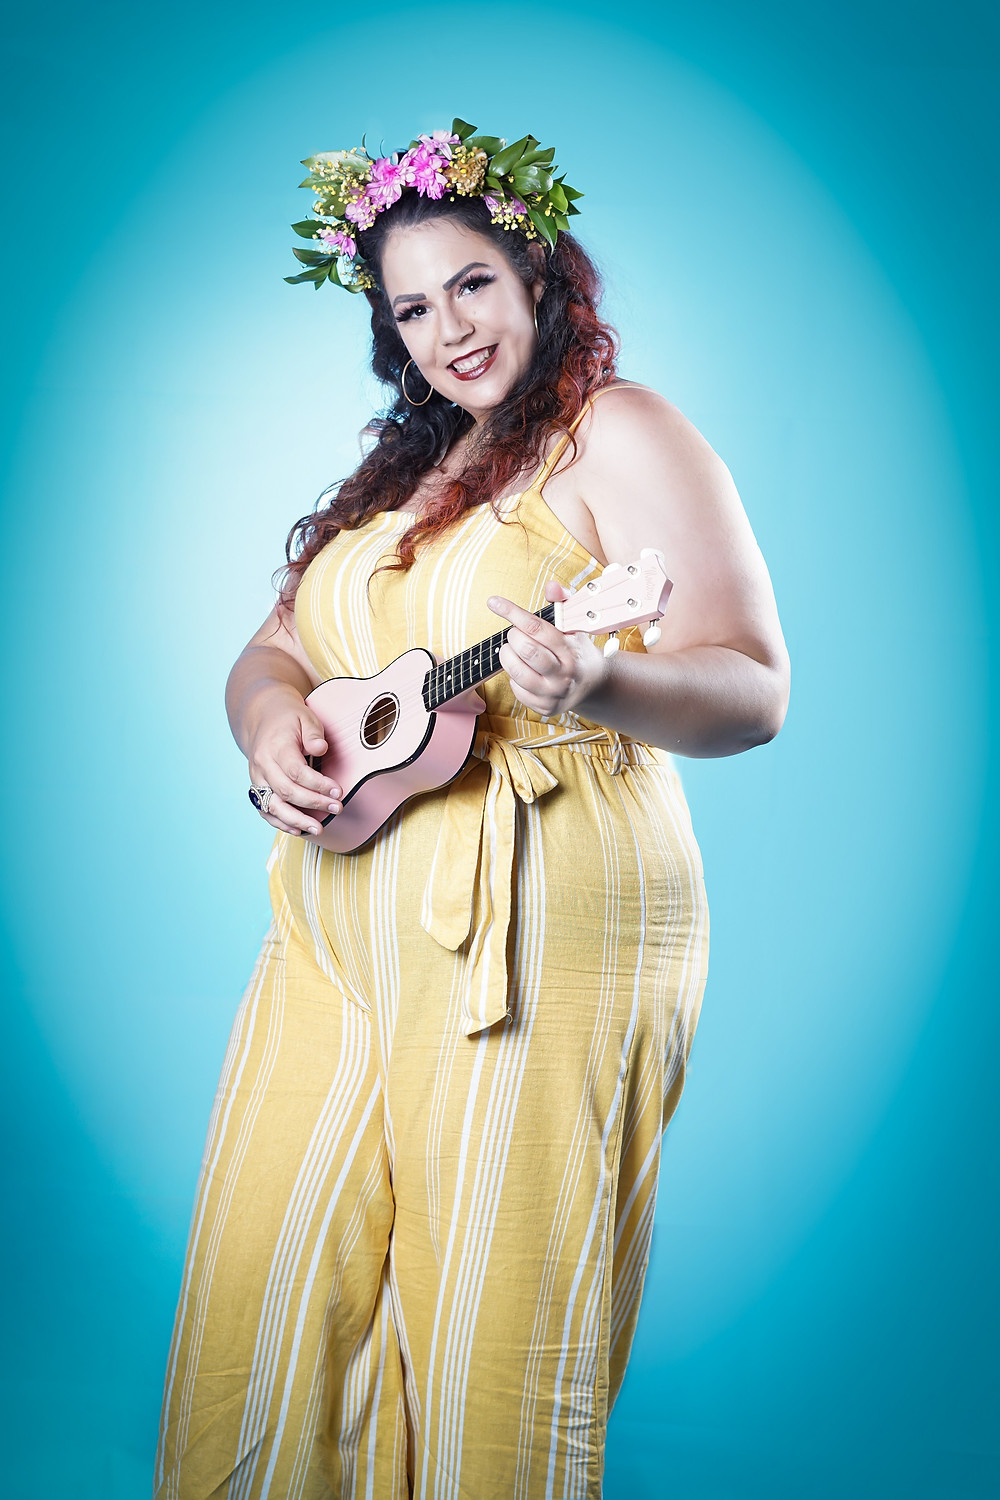 Me wearing a nice yellow jumpsuit, flower crown, and make up. I'm playing a tiny pink ukulele.